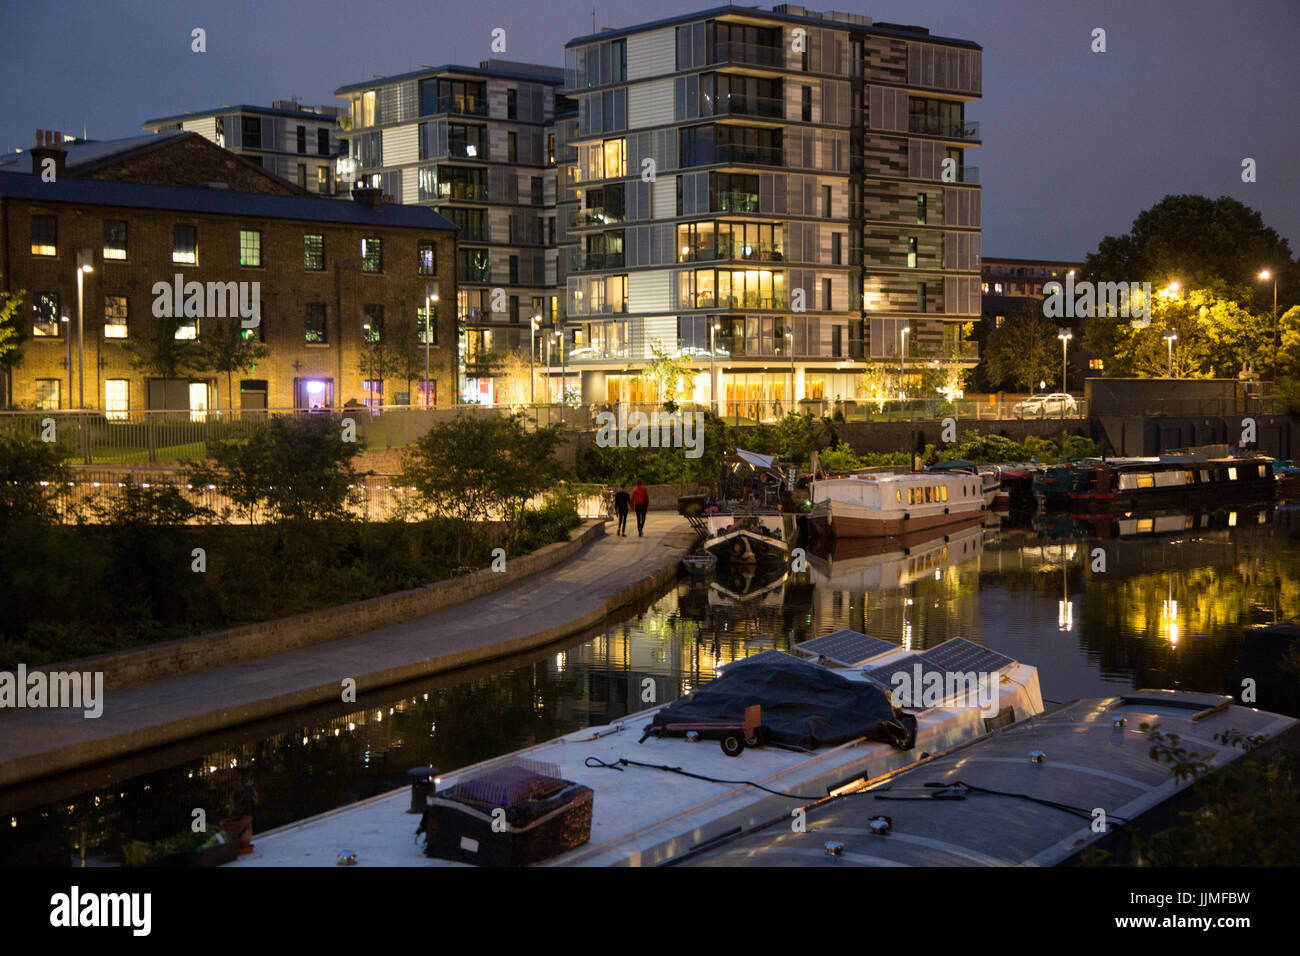 Grand Union Canal, King's Cross at night - Stock Image